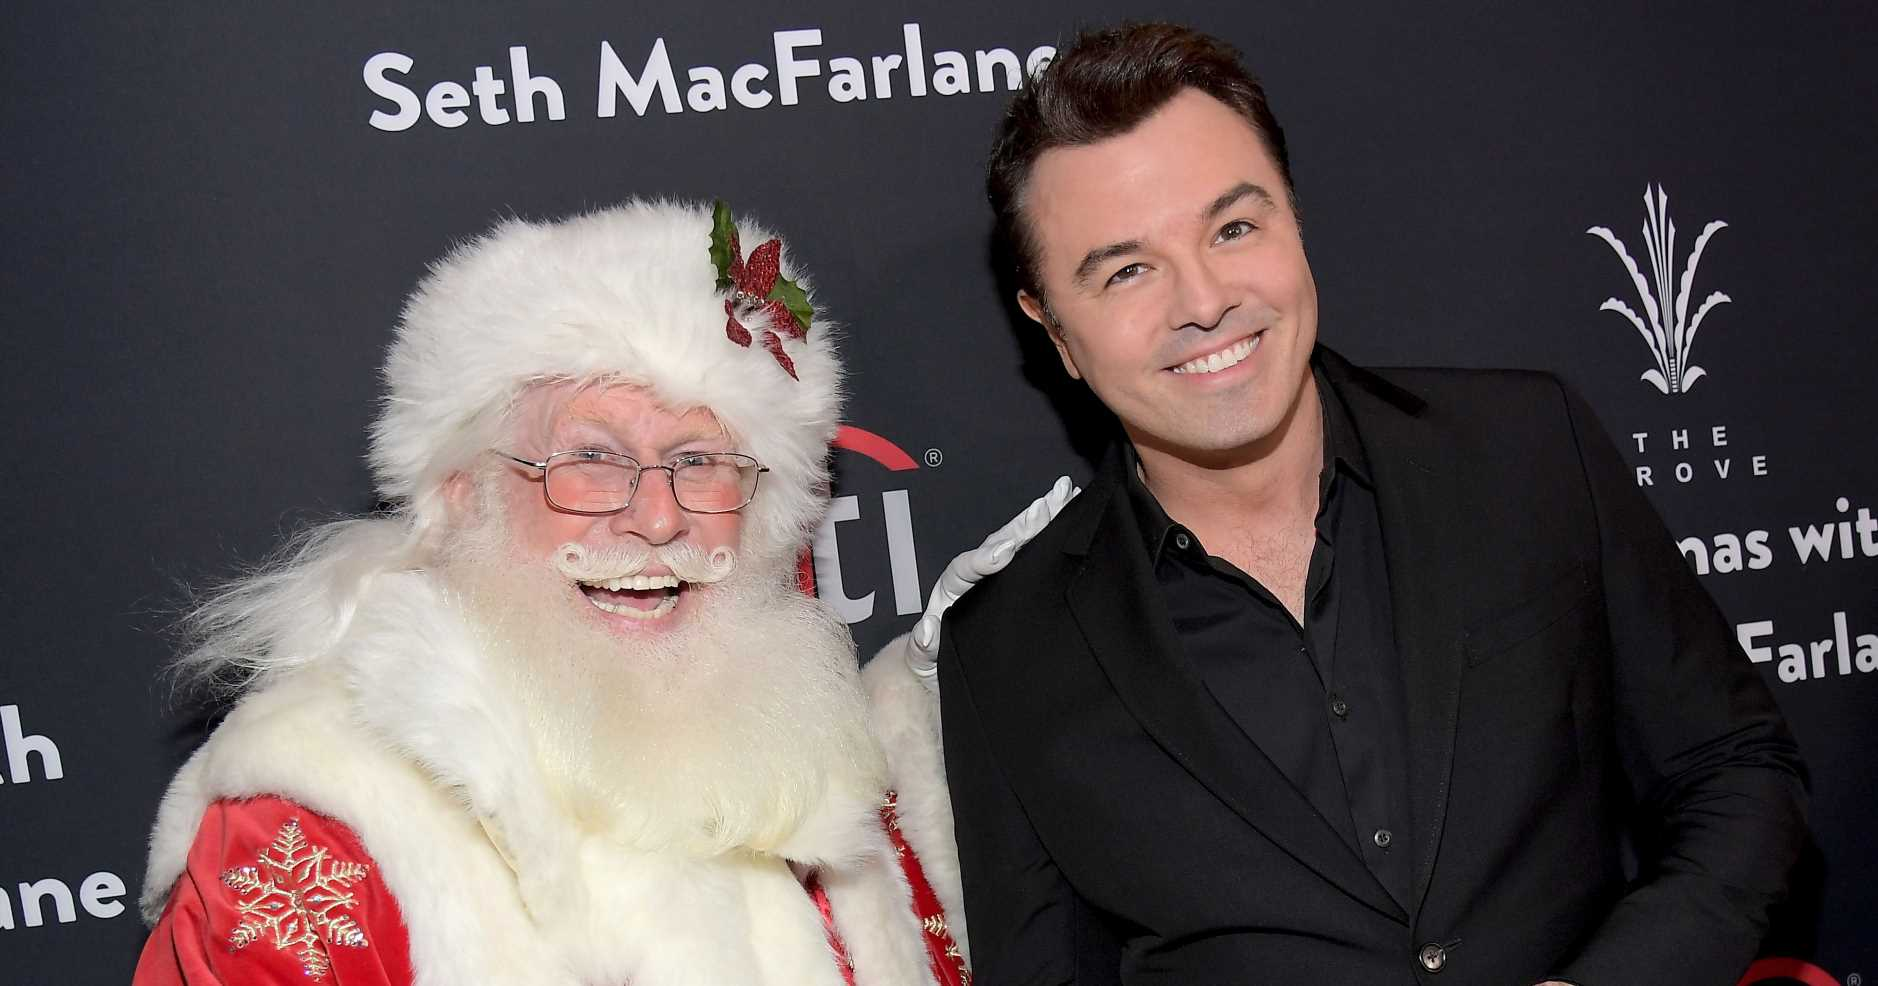 From Leo DiCaprio to Nick Viall: Inside Seth MacFarlane's Christmas Party